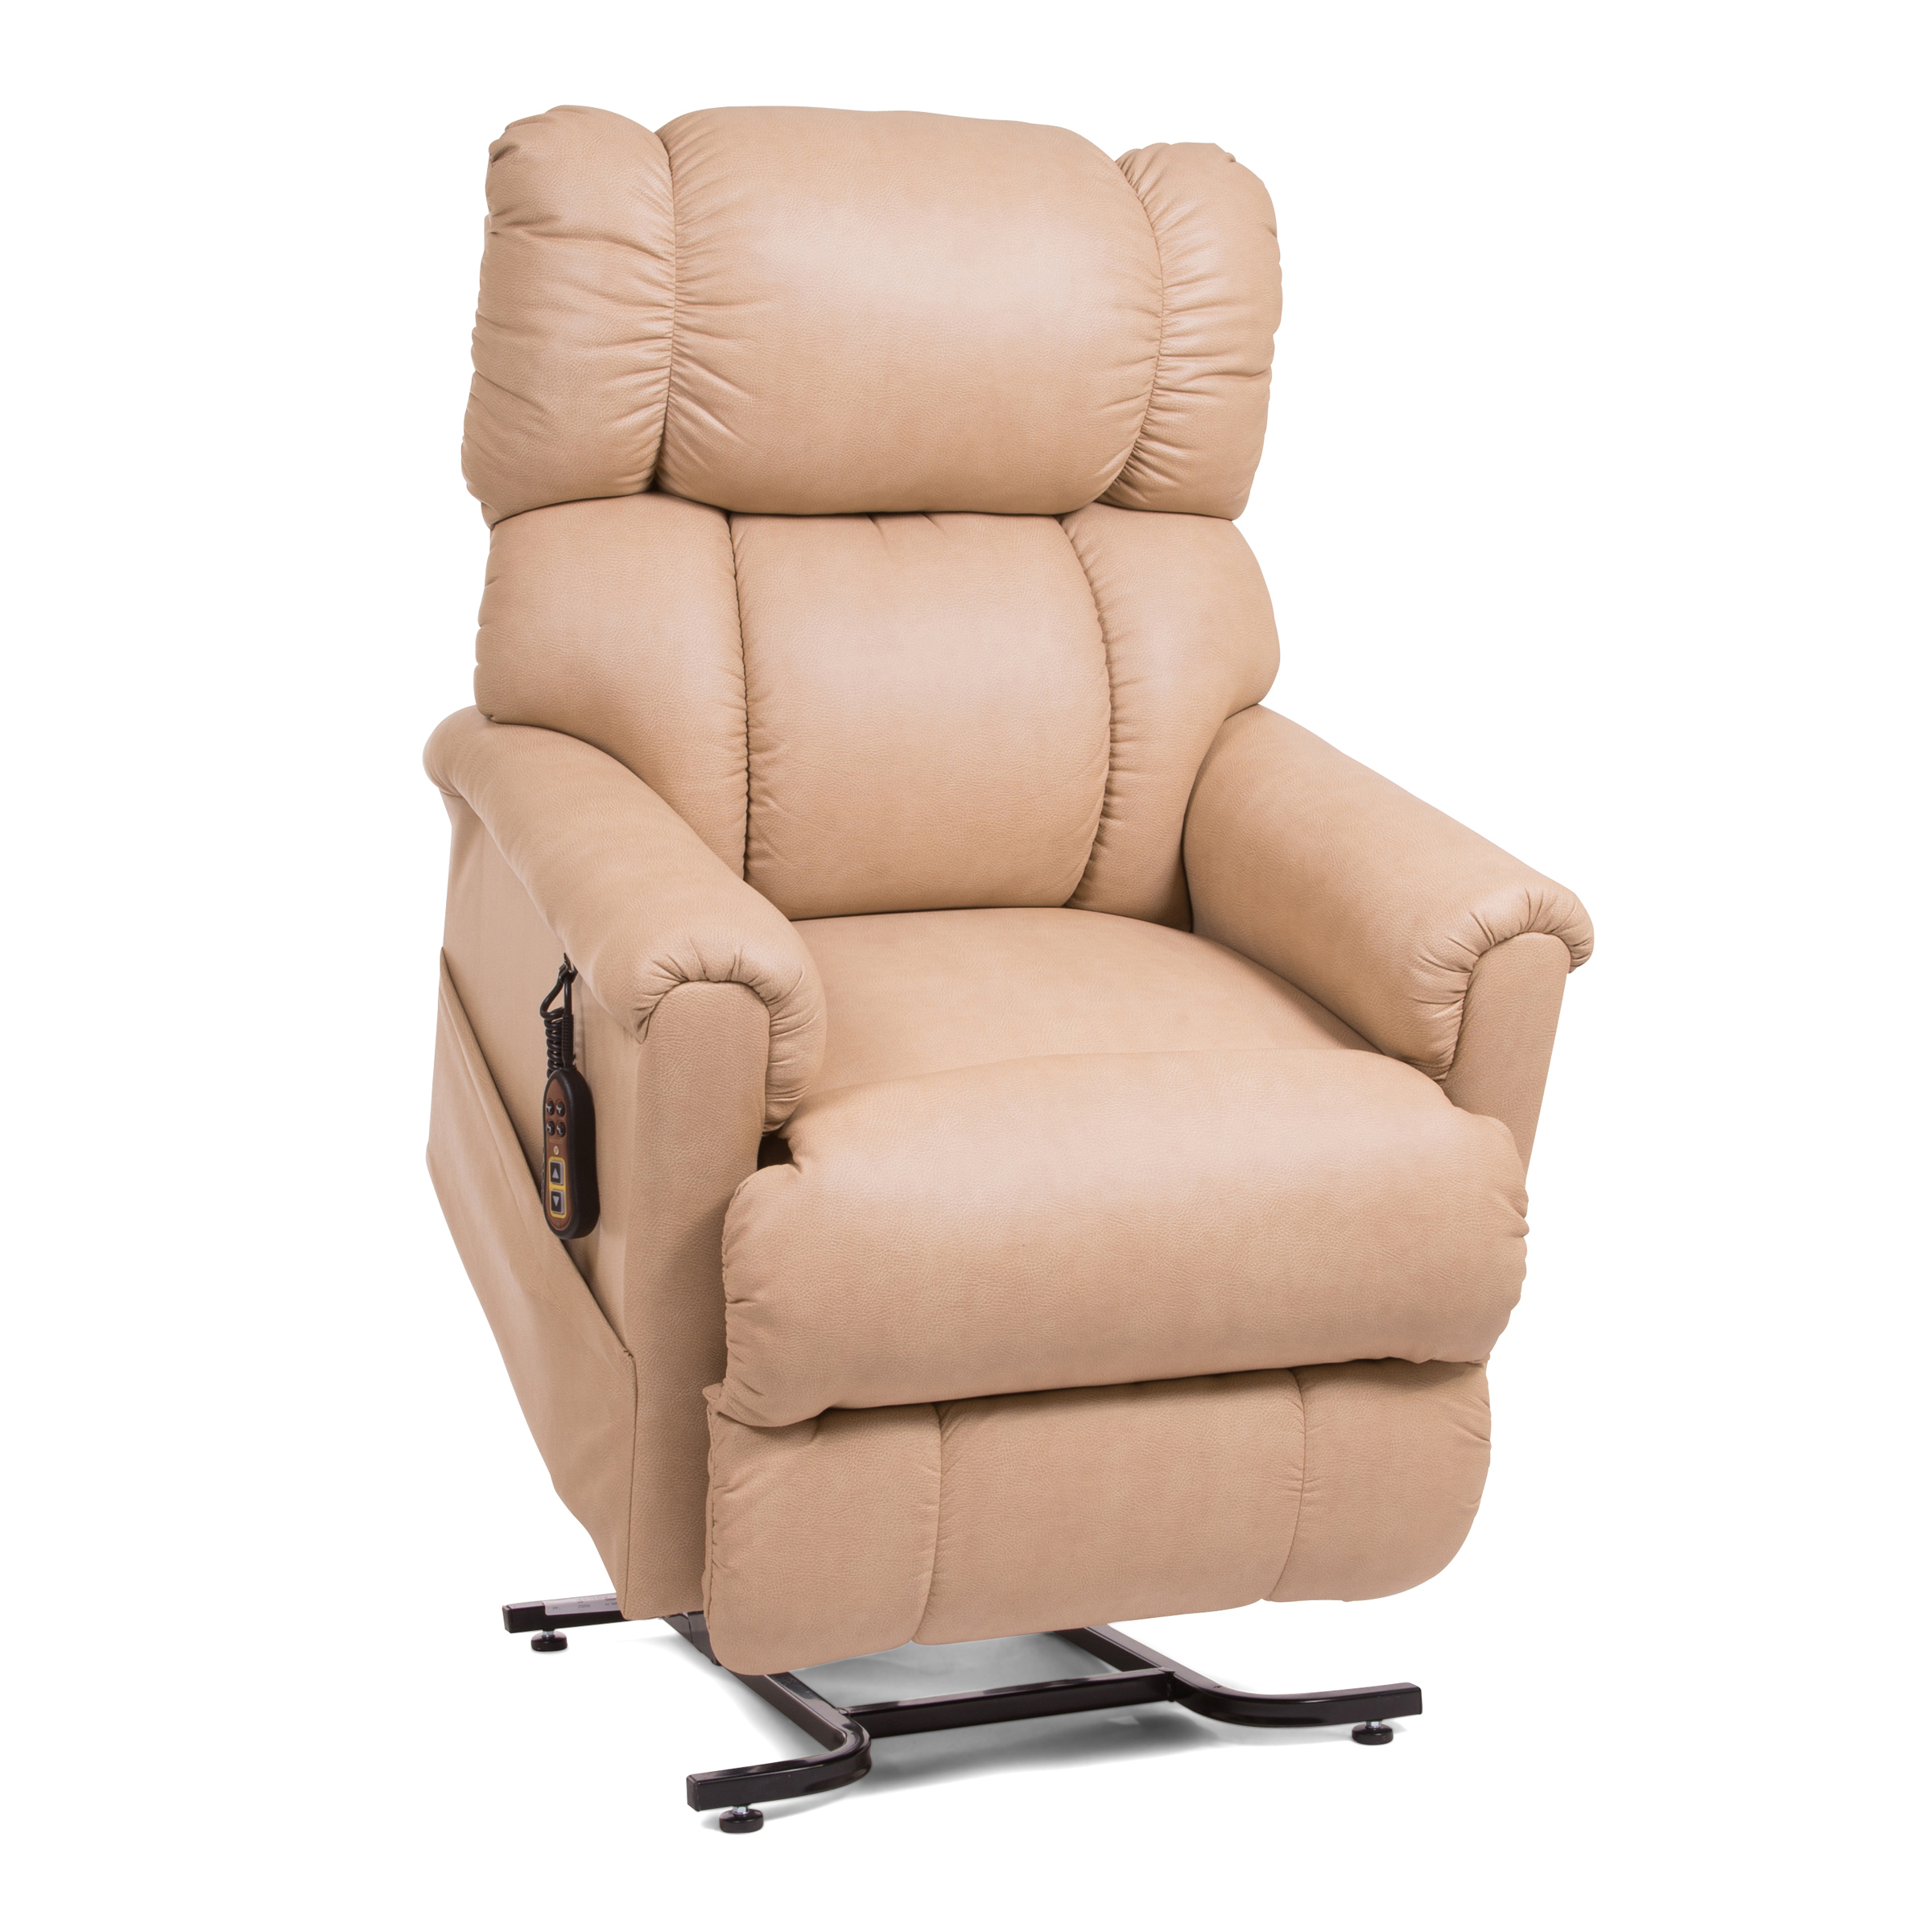 Golden Technologies Imperial Pr404 3 Position Lift Chair